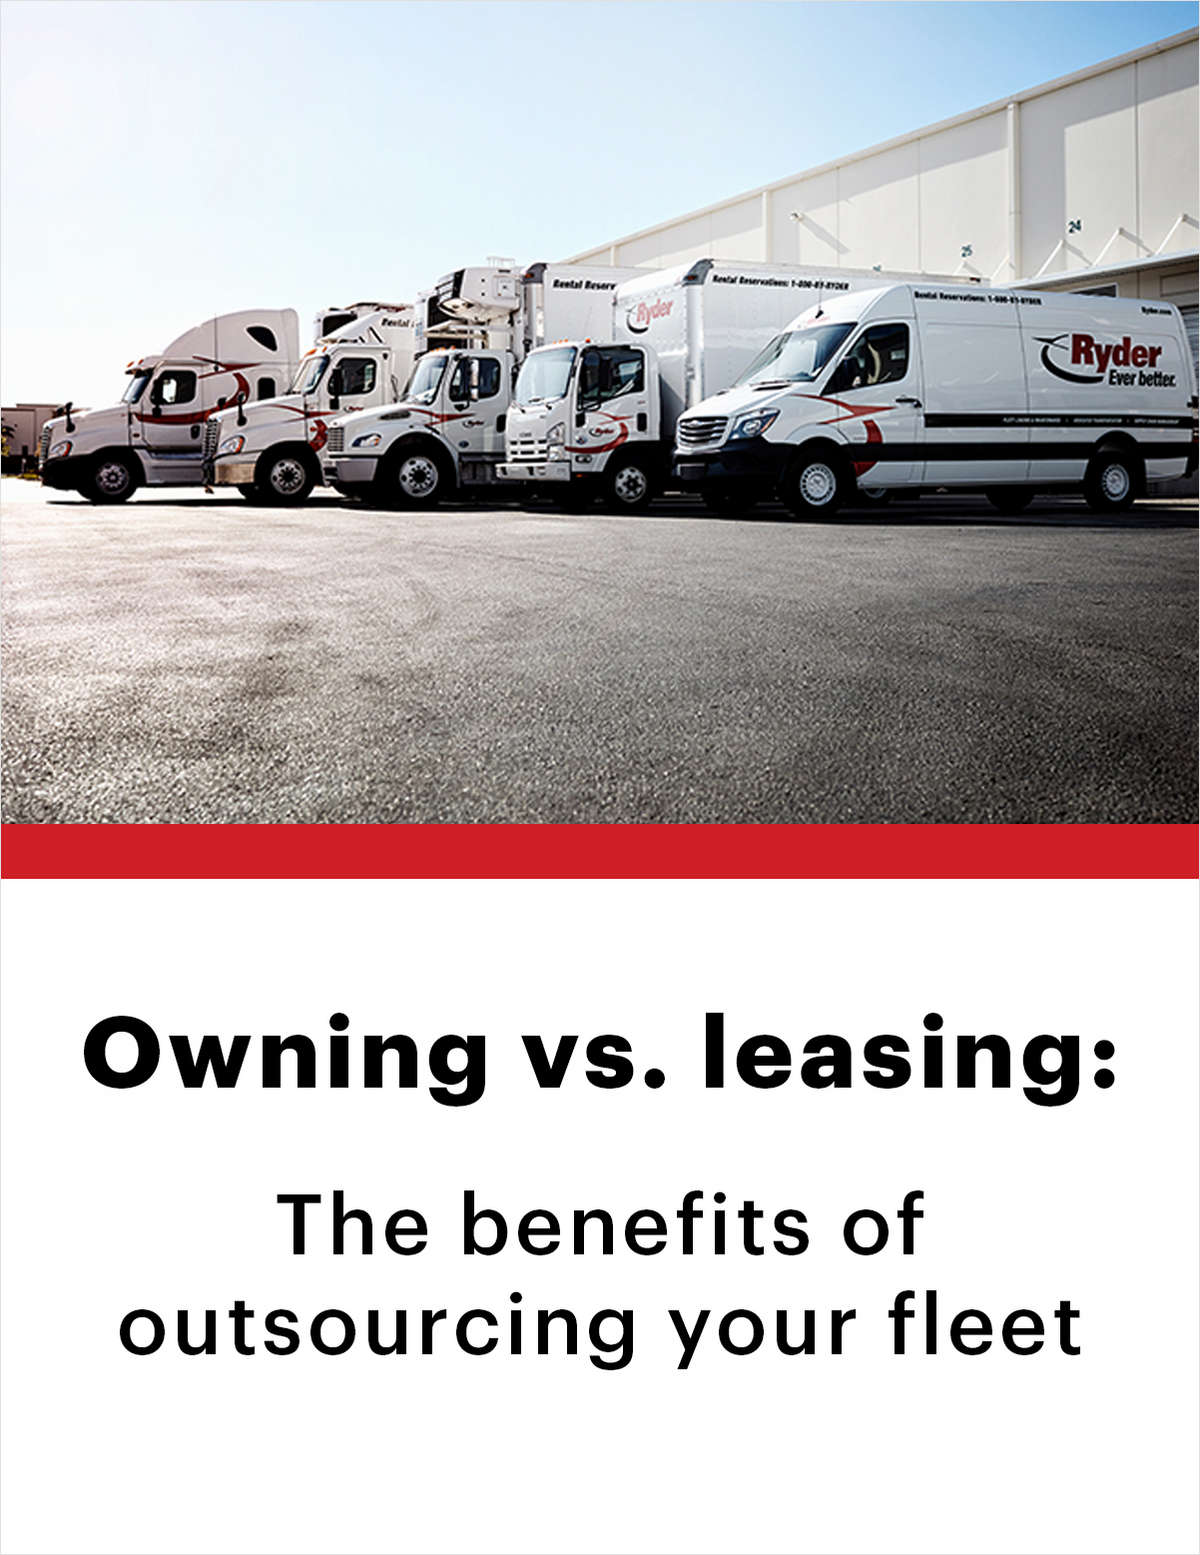 Owning vs. leasing: The benefits of outsourcing your fleet